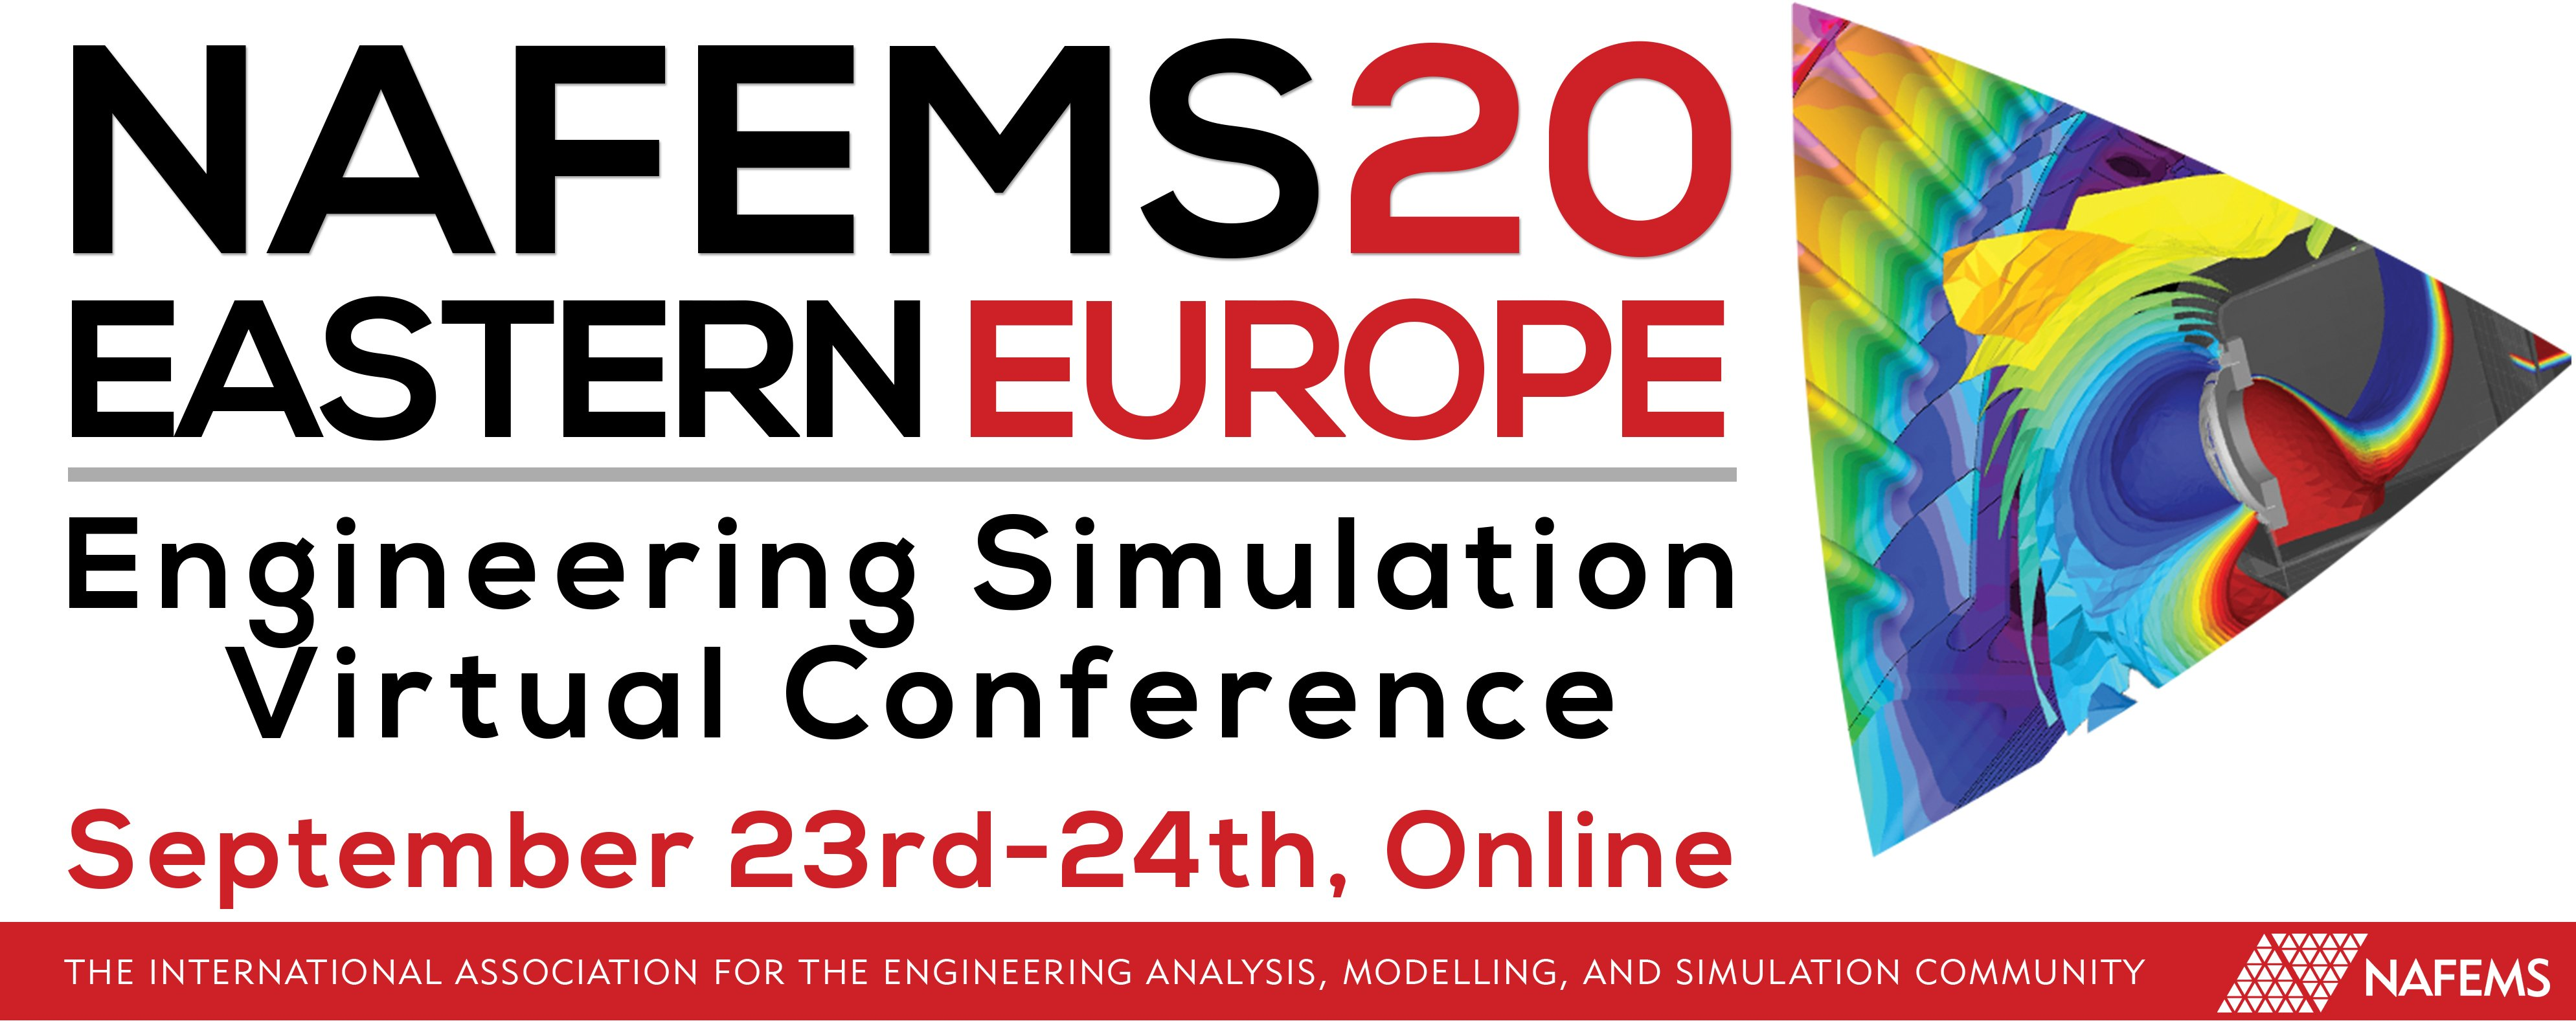 NAFEMS Eastern European 2020 Engineering Simulation Virtual Conference